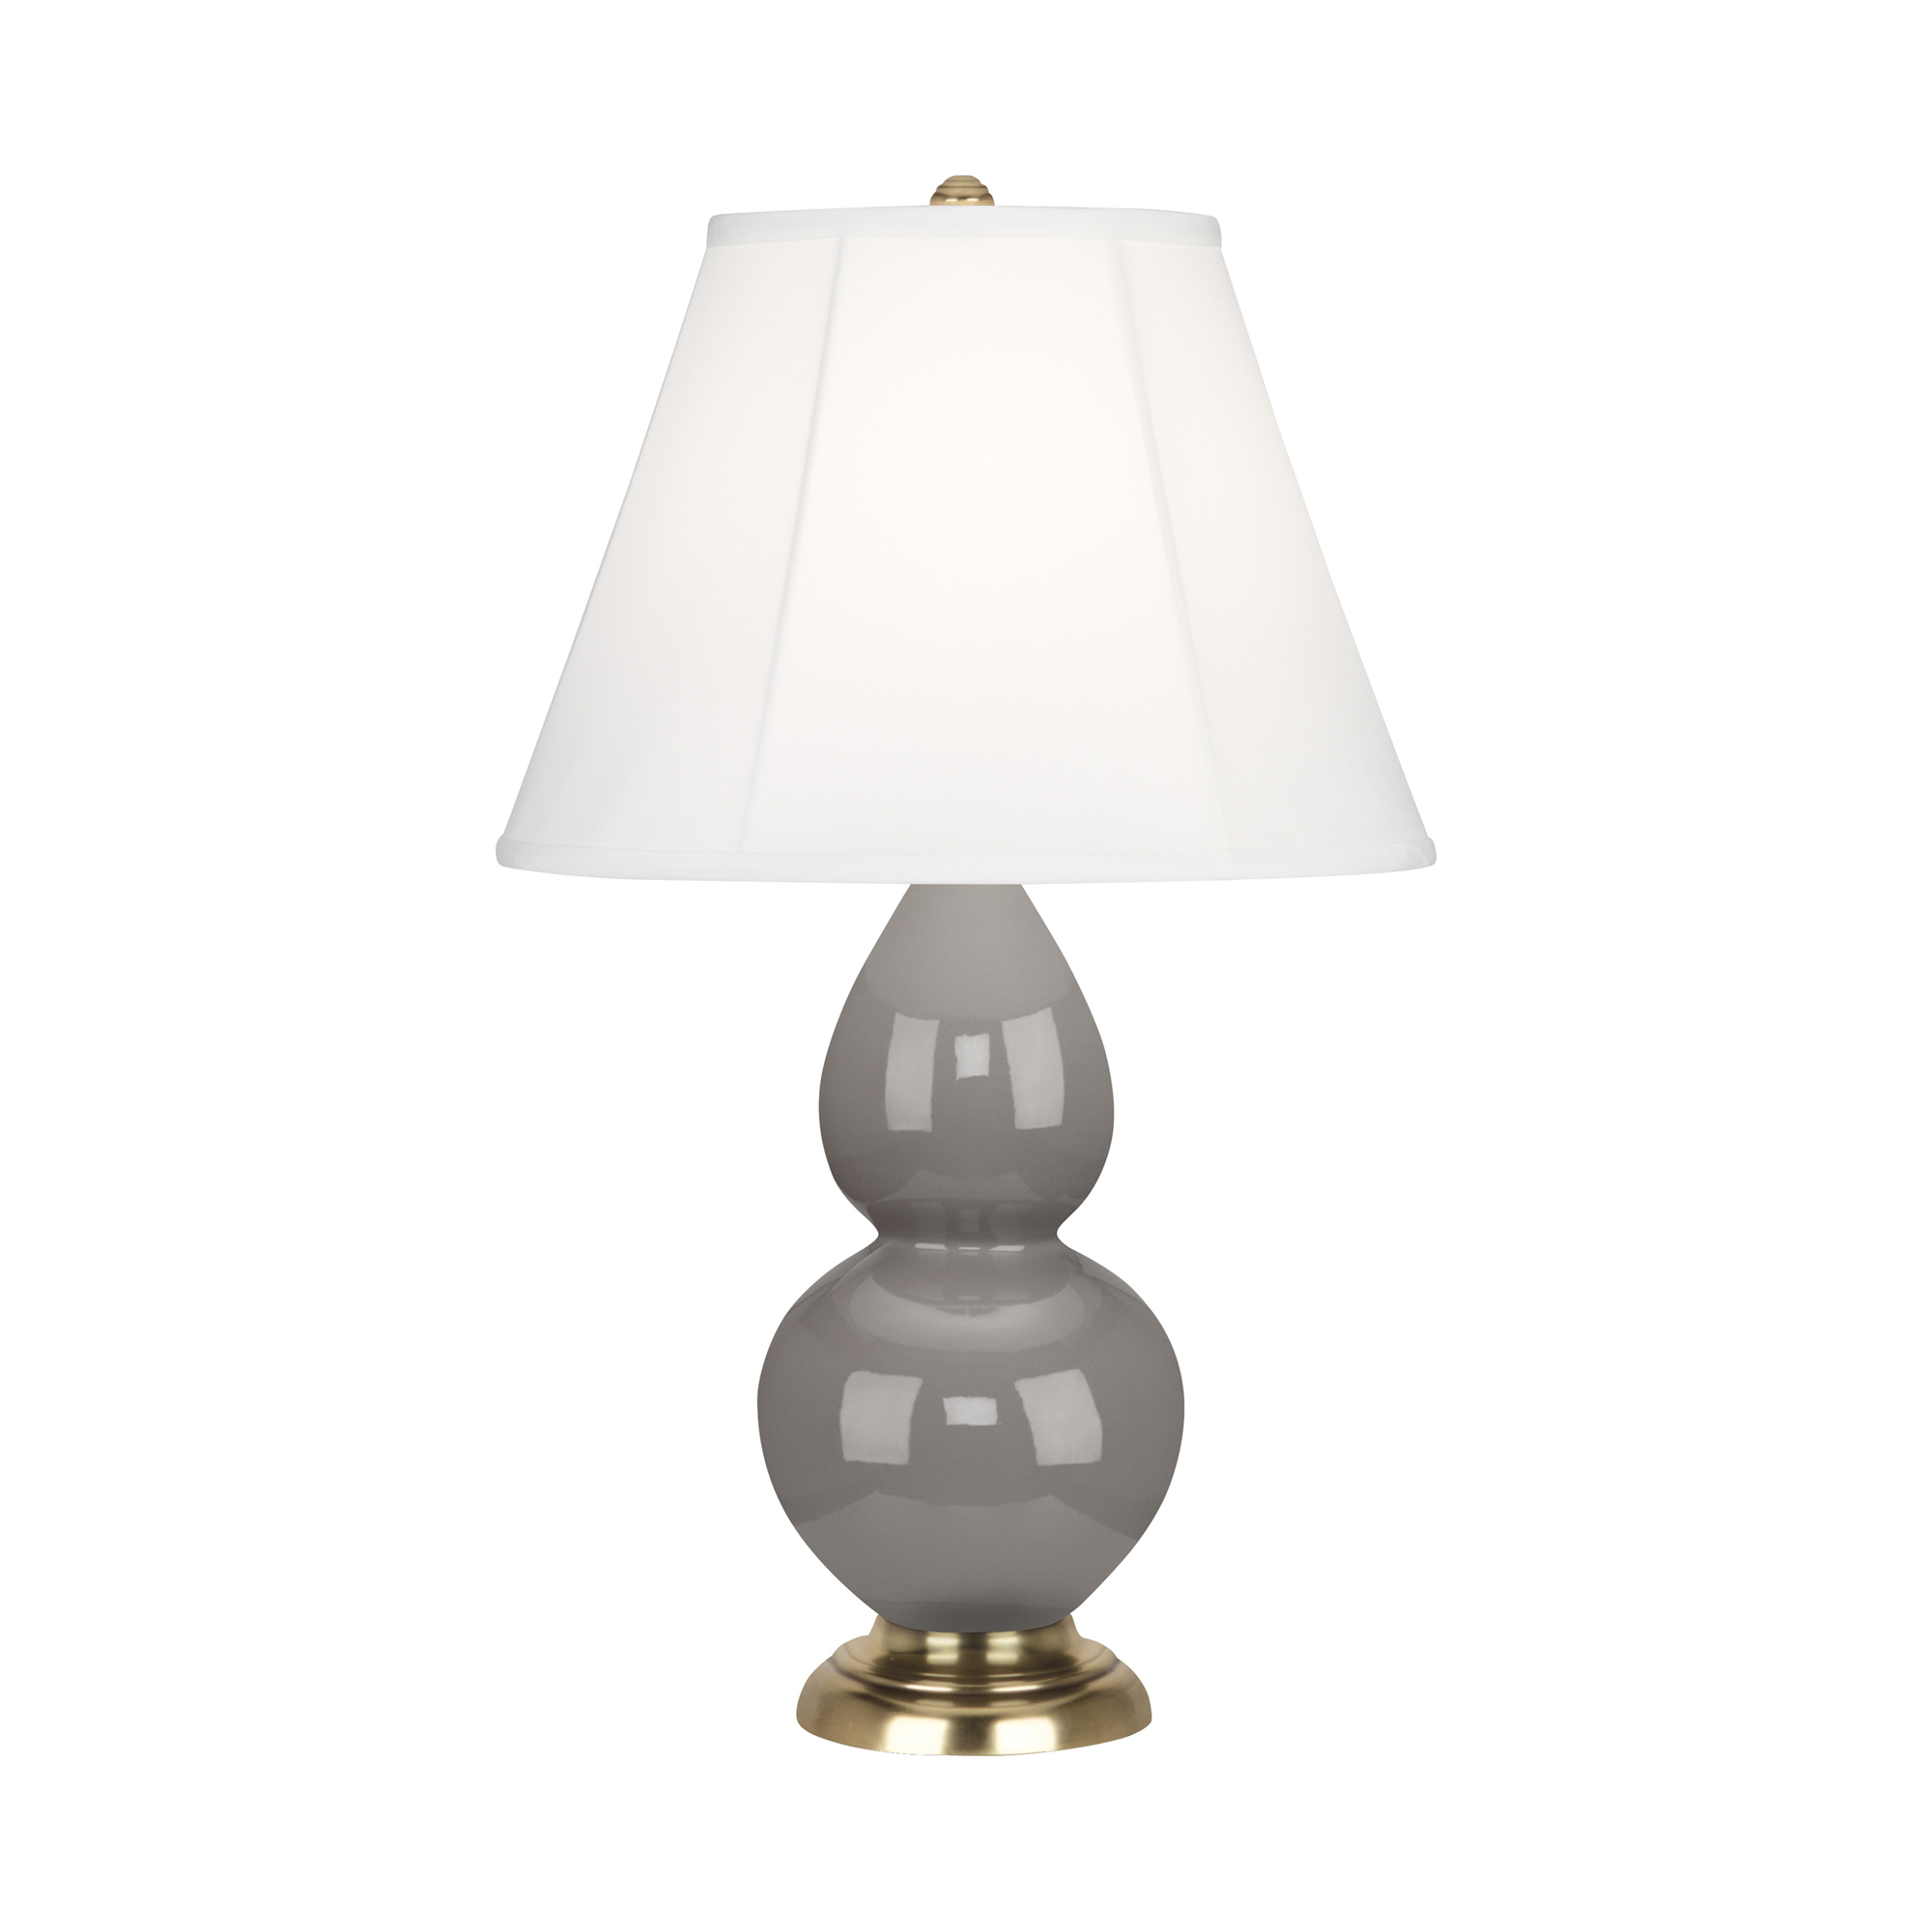 Small Double Gourd Accent Lamp Style #1768